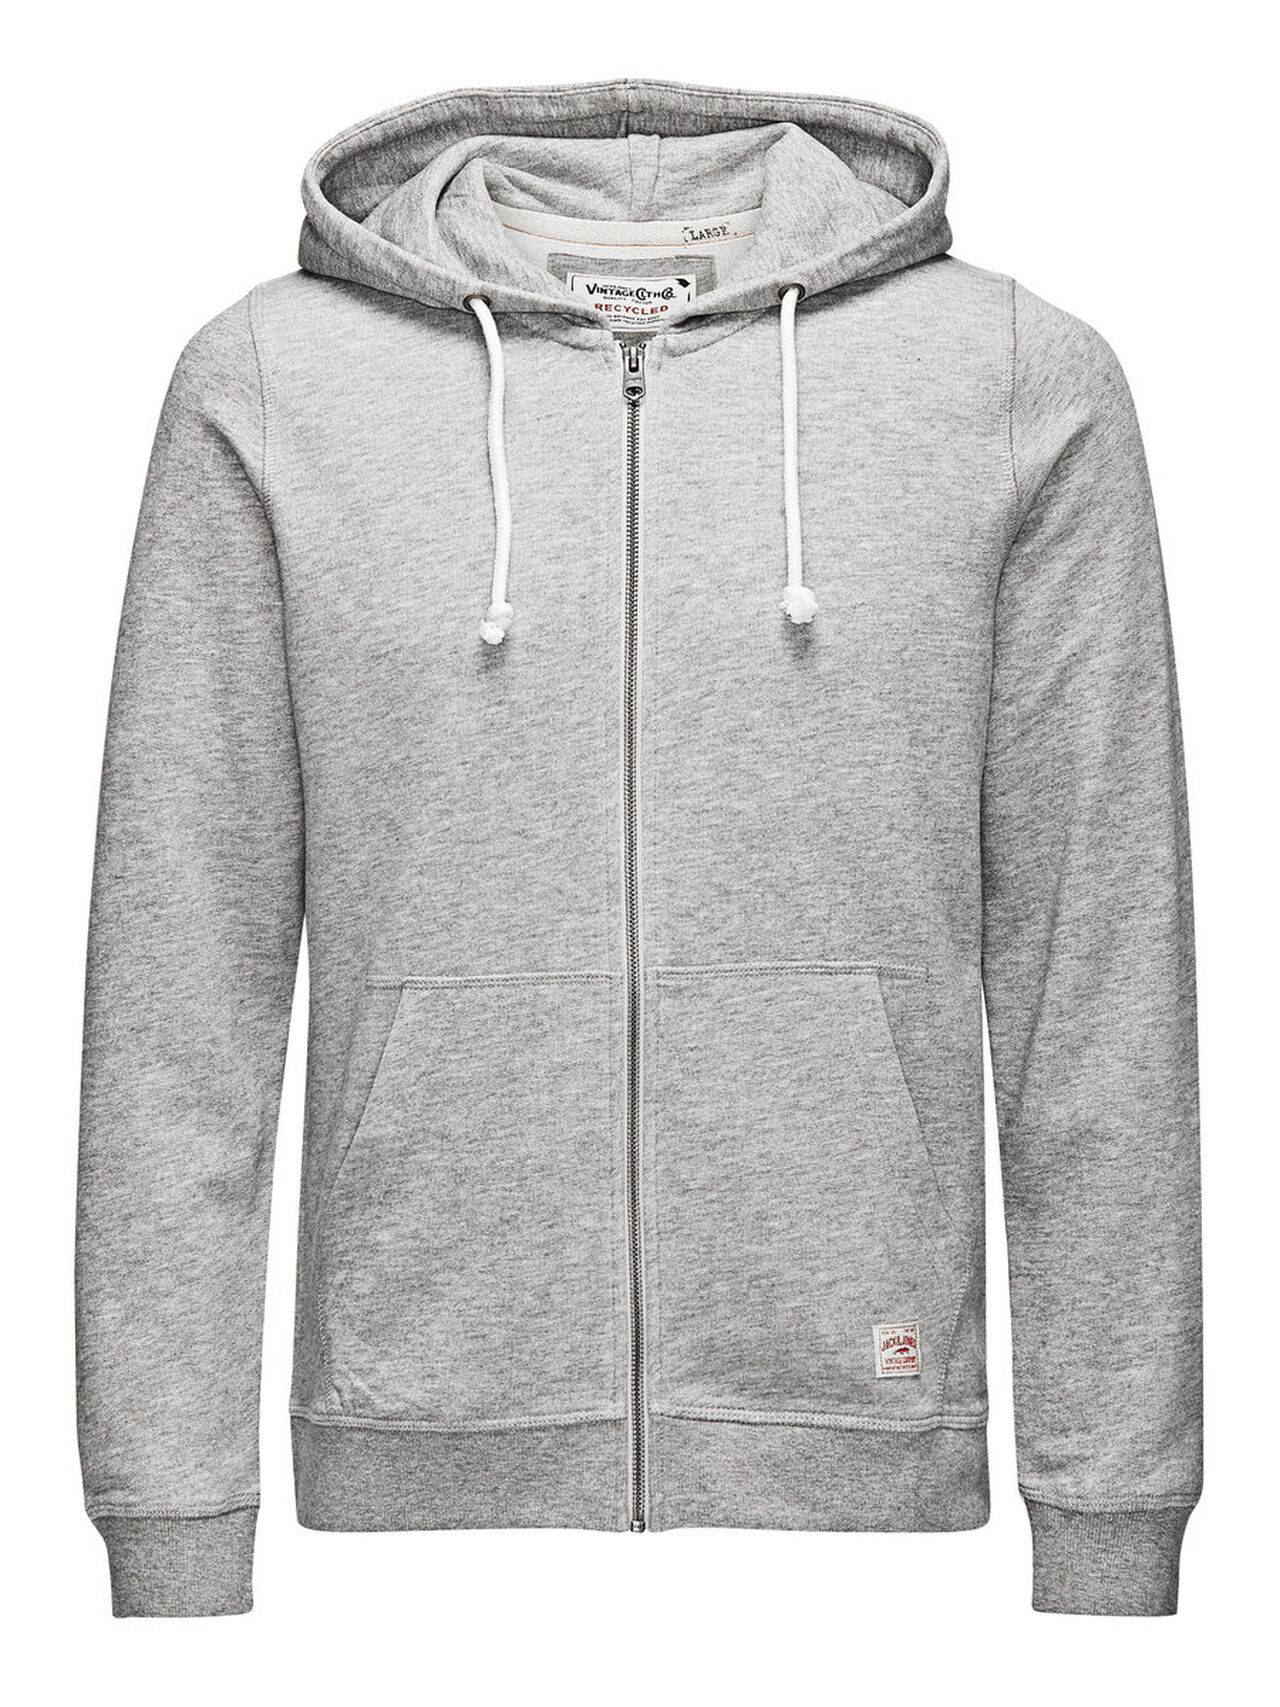 JACK & JONES Hooded Zip Through Sweatshirt Men Grey LightGreyMelange